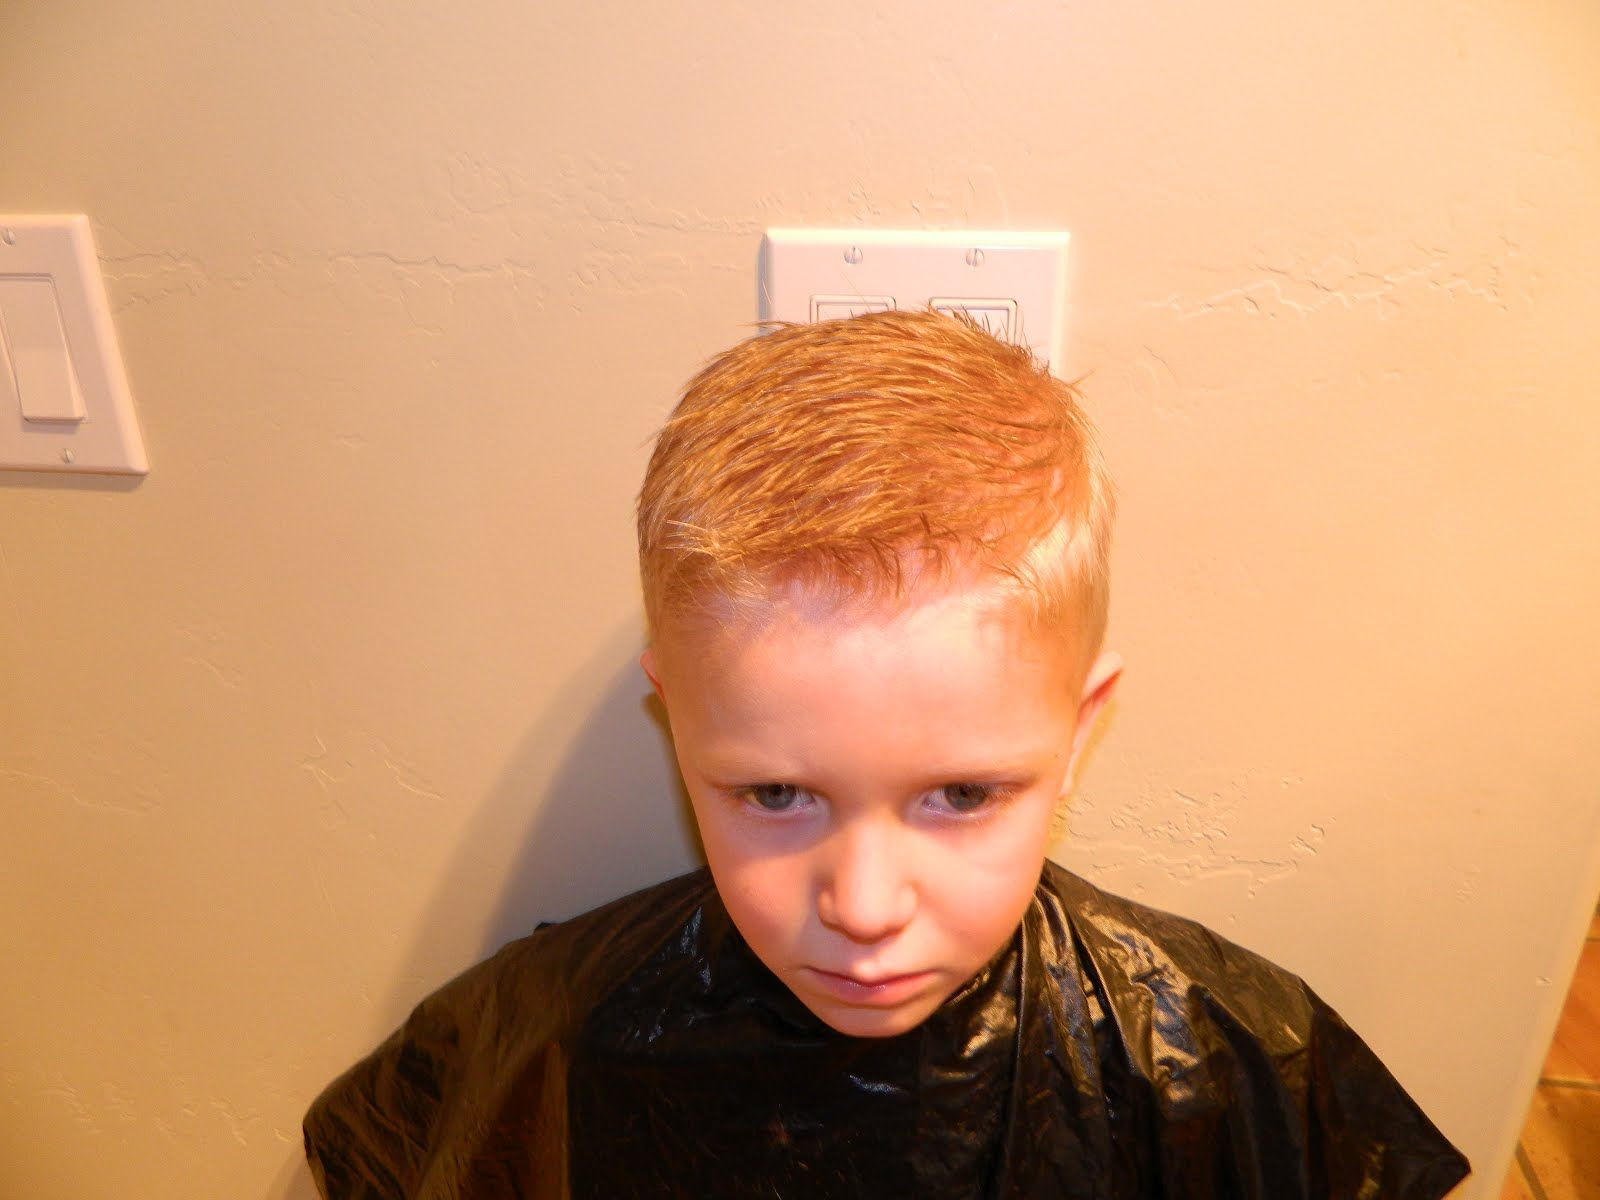 Awesome tutorial. Now if I can get Z to stop screaming and flailing so I can do it, we'll have a win! - Boys Hair cuts 101